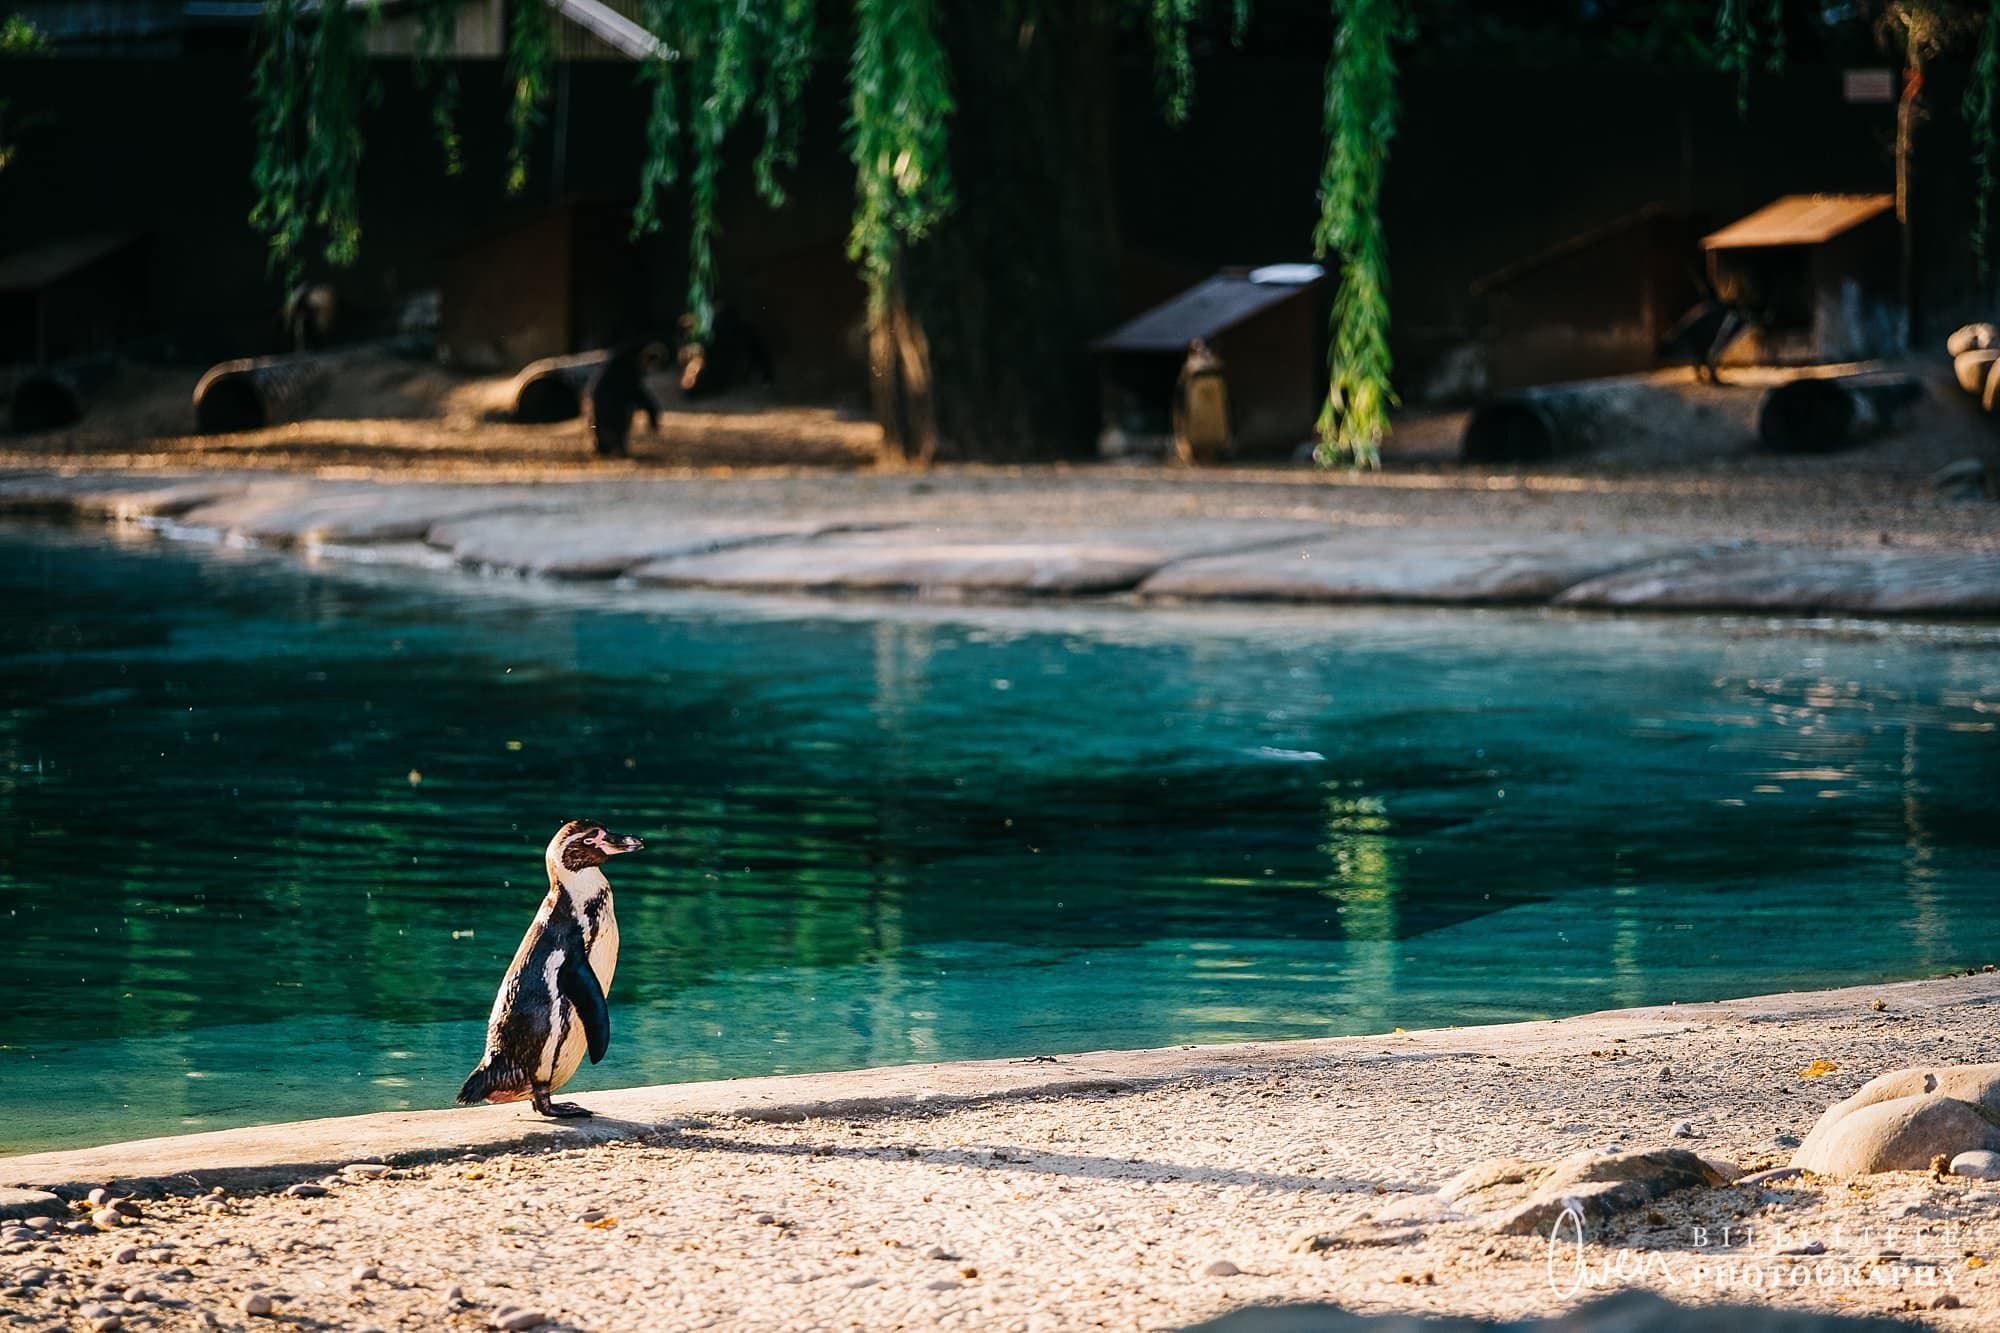 london event photographer zsl london zoo 1706 021 - A Party with the Penguins at London Zoo